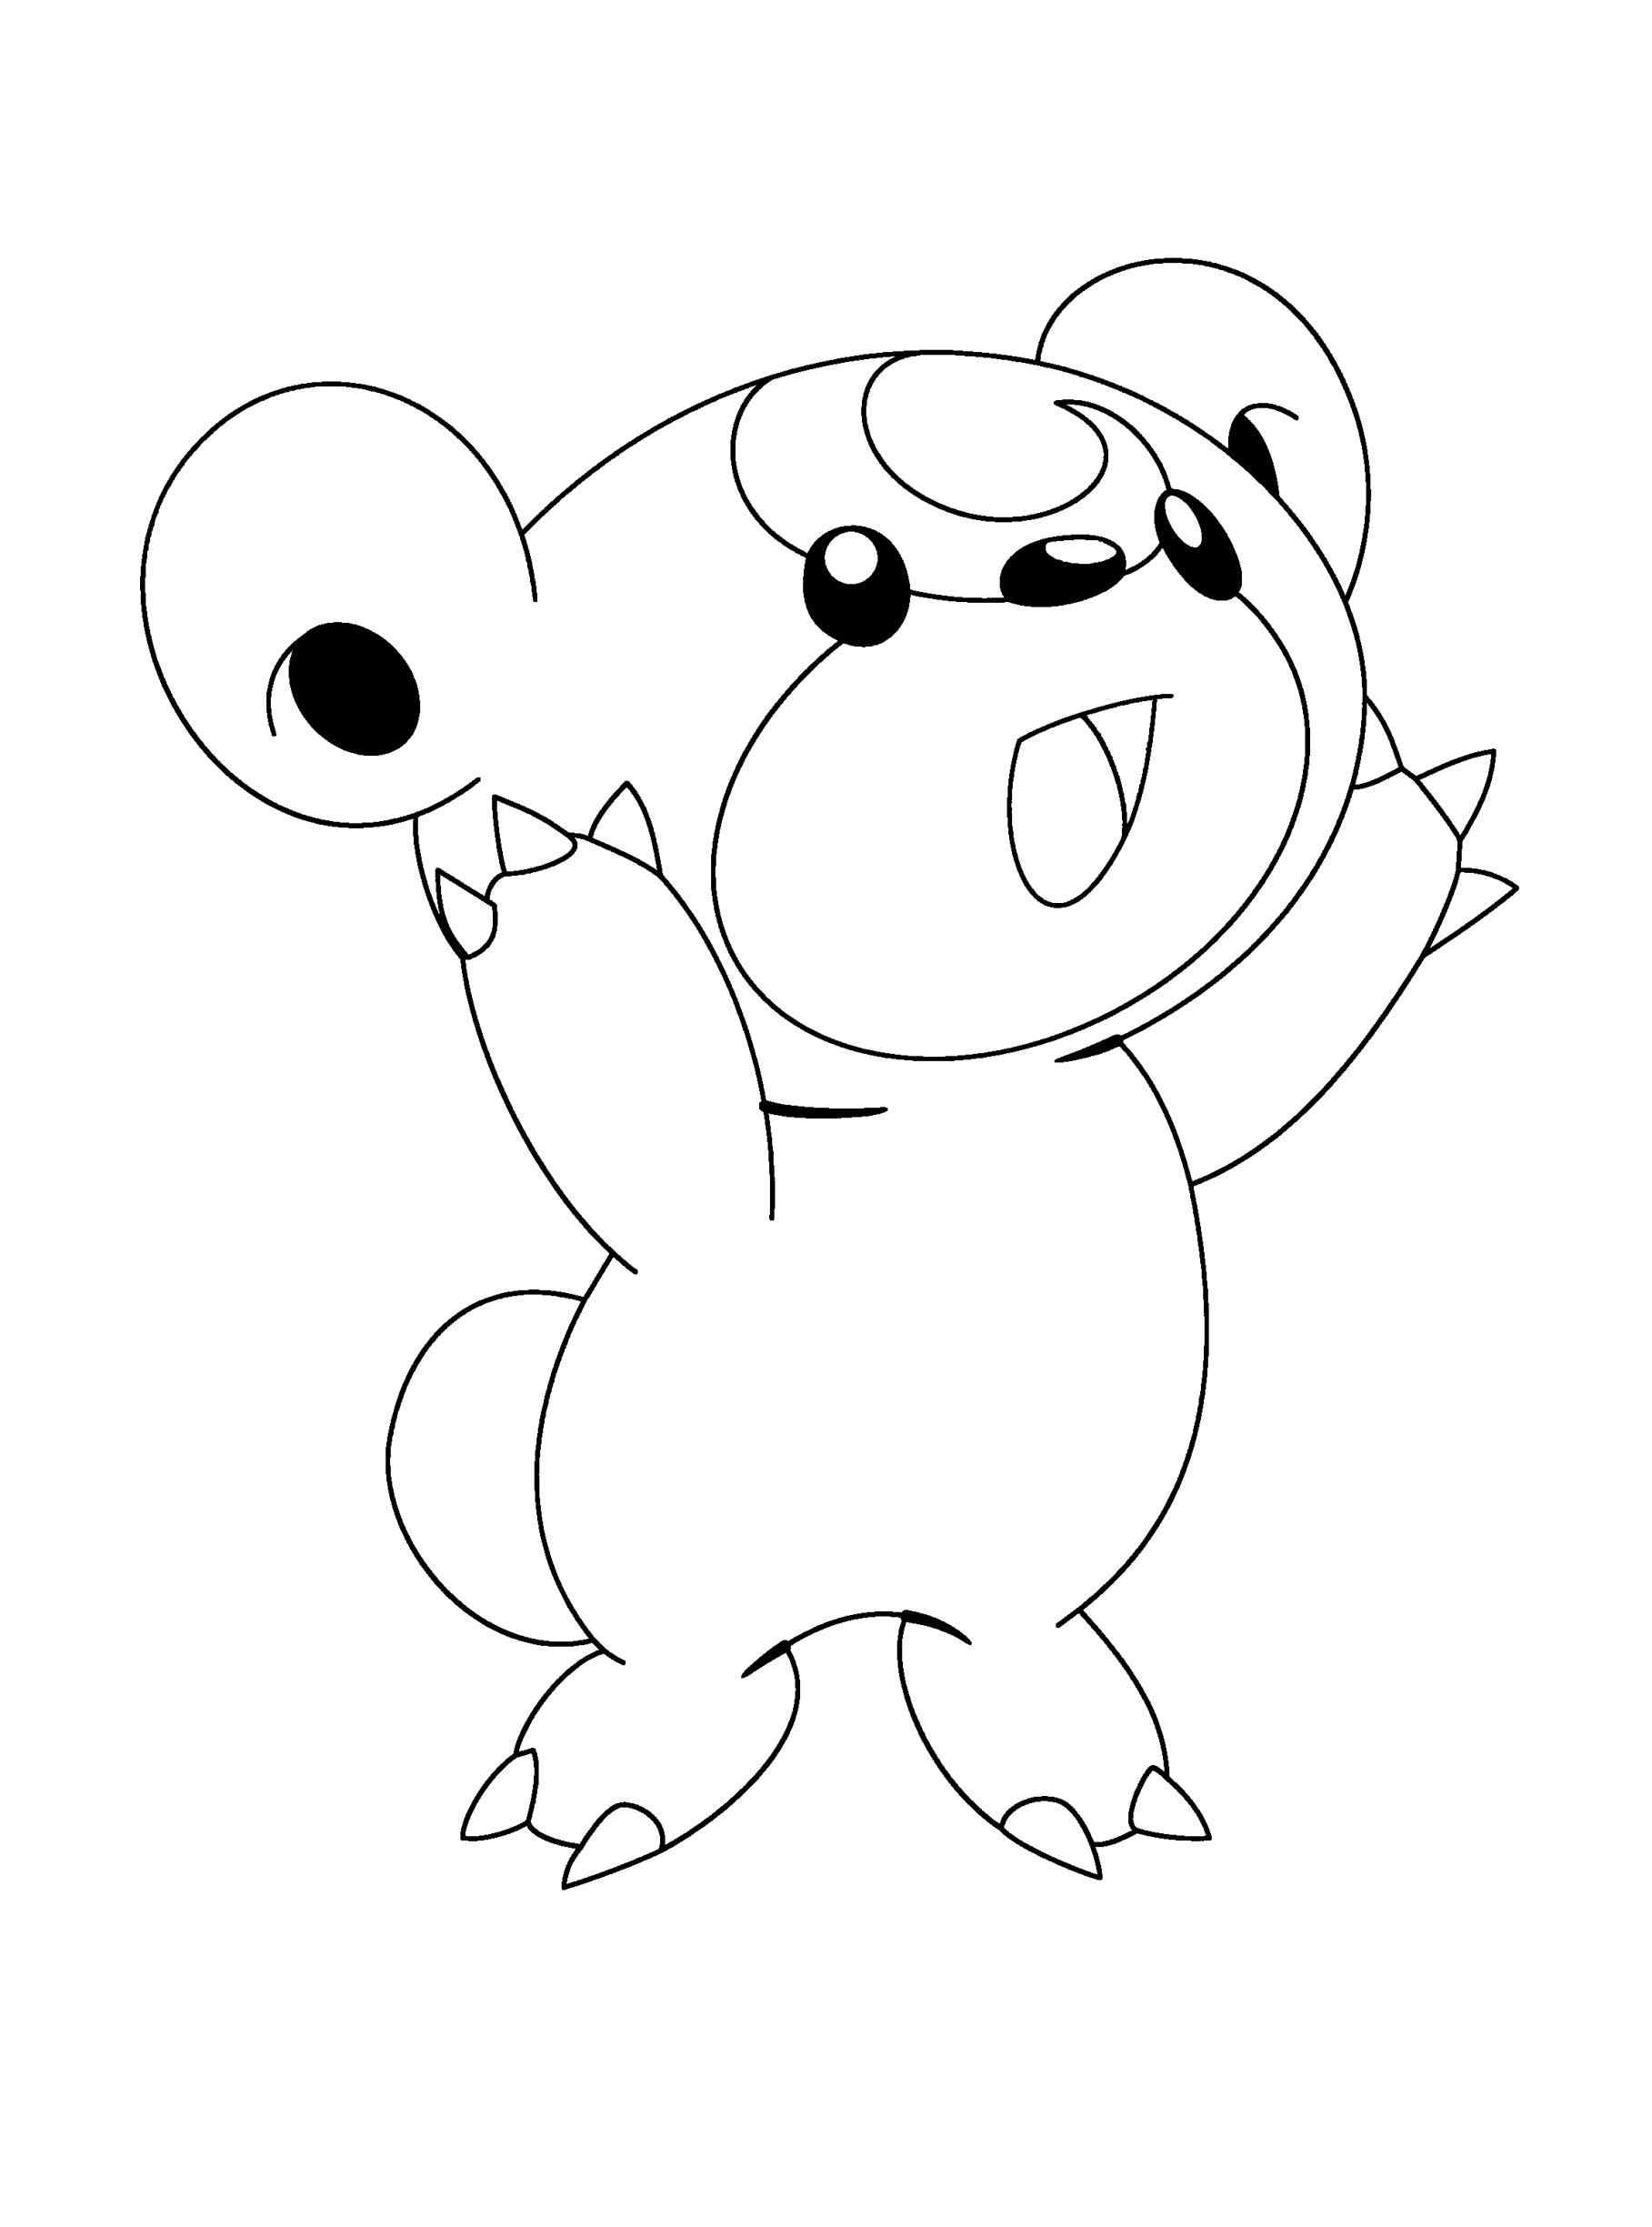 1817x2449 Opportunities Popplio Coloring Page Best Hd Po